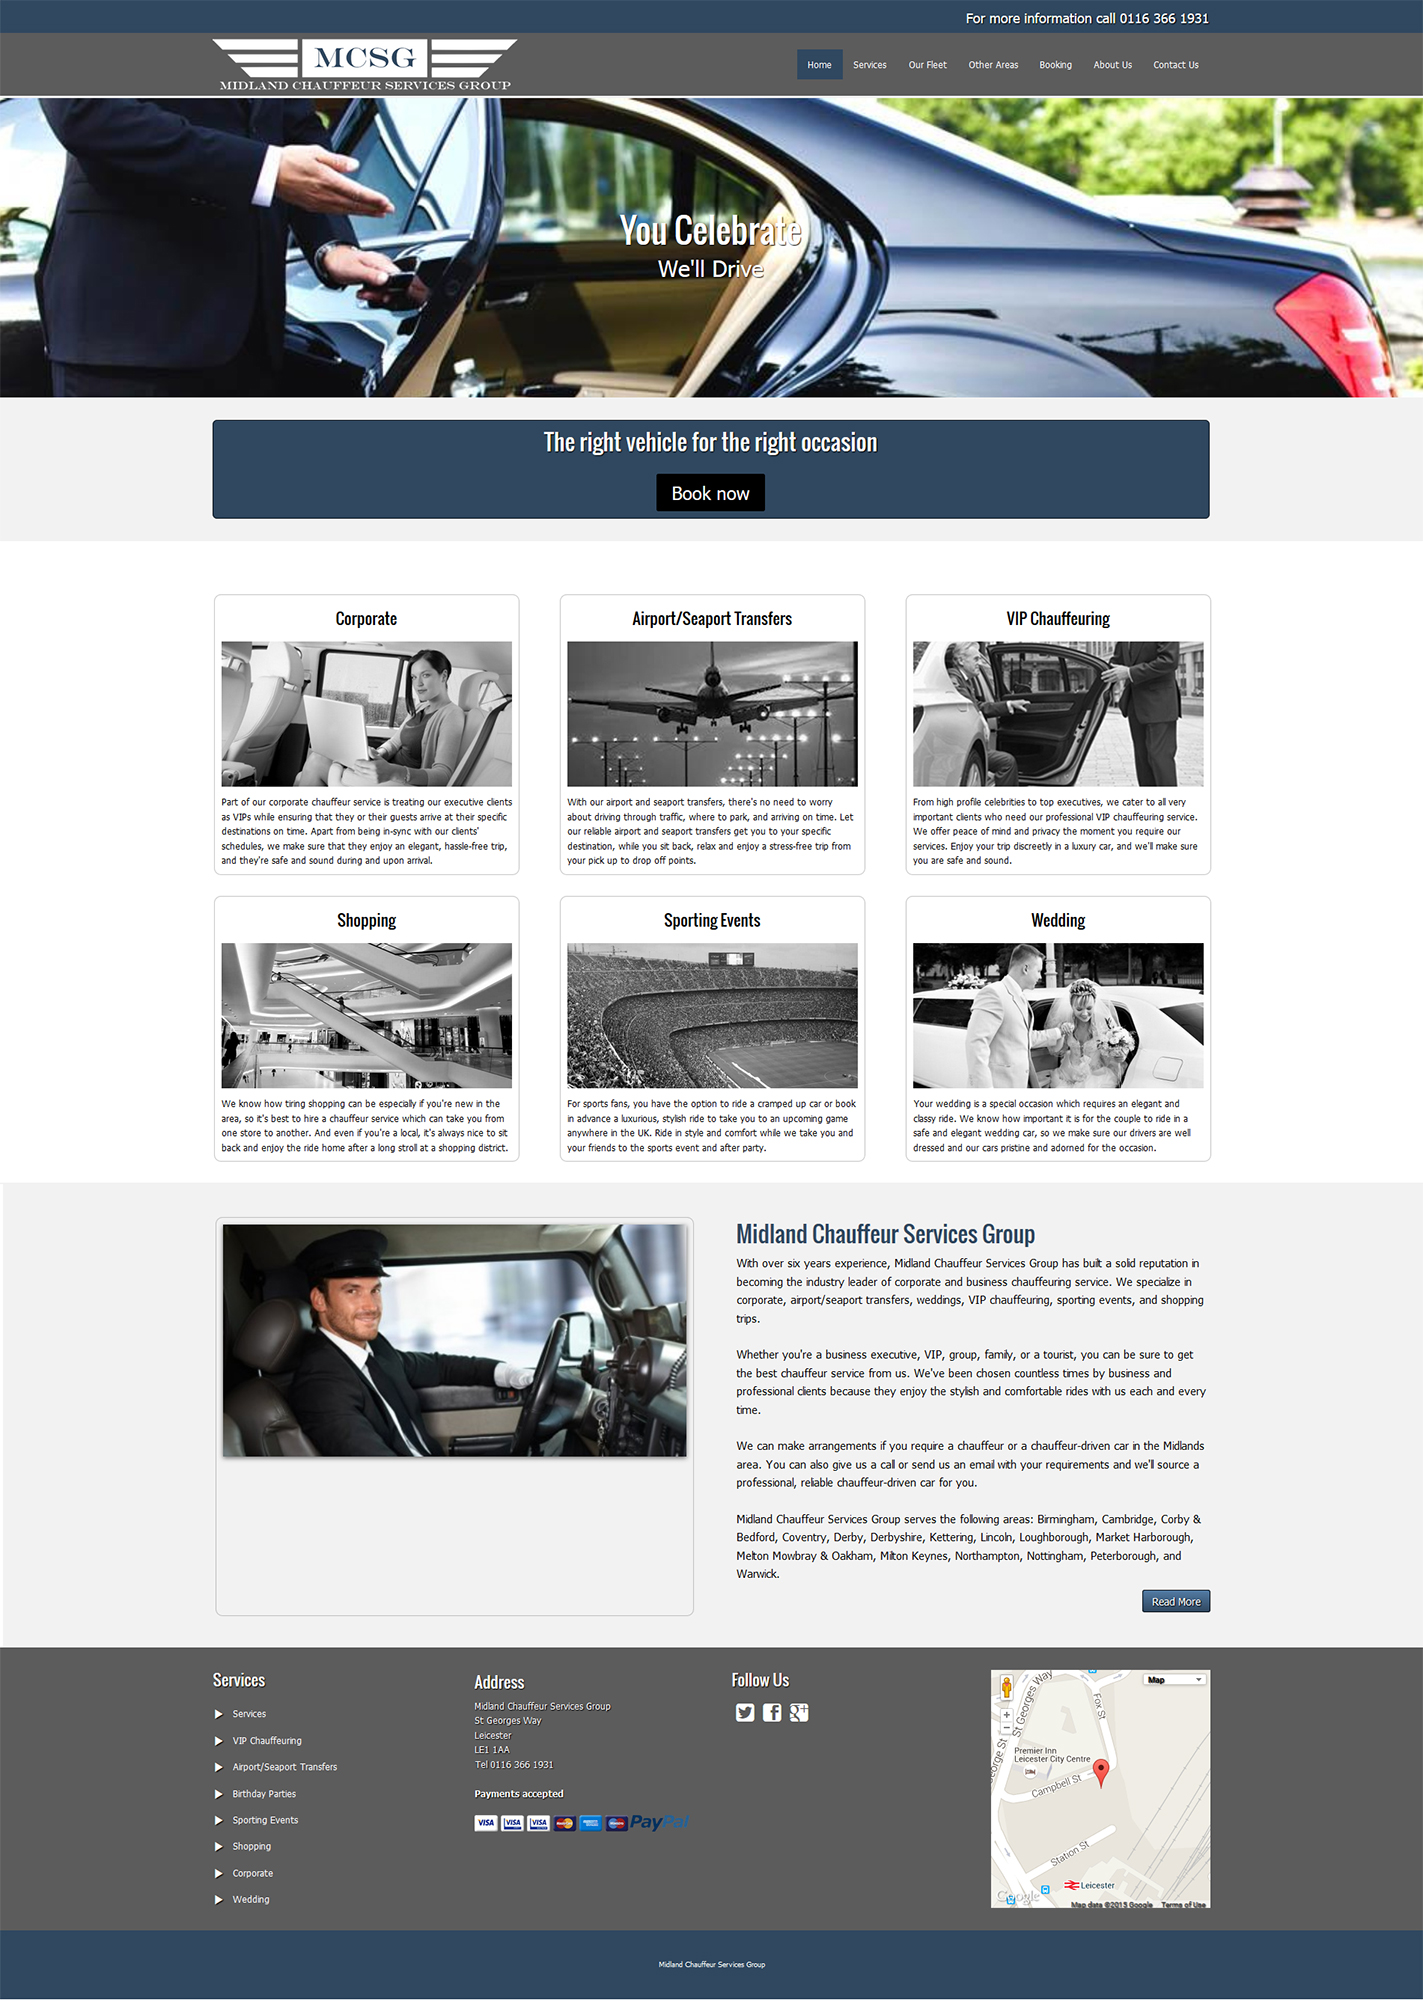 Midland Chauffeur Services Group